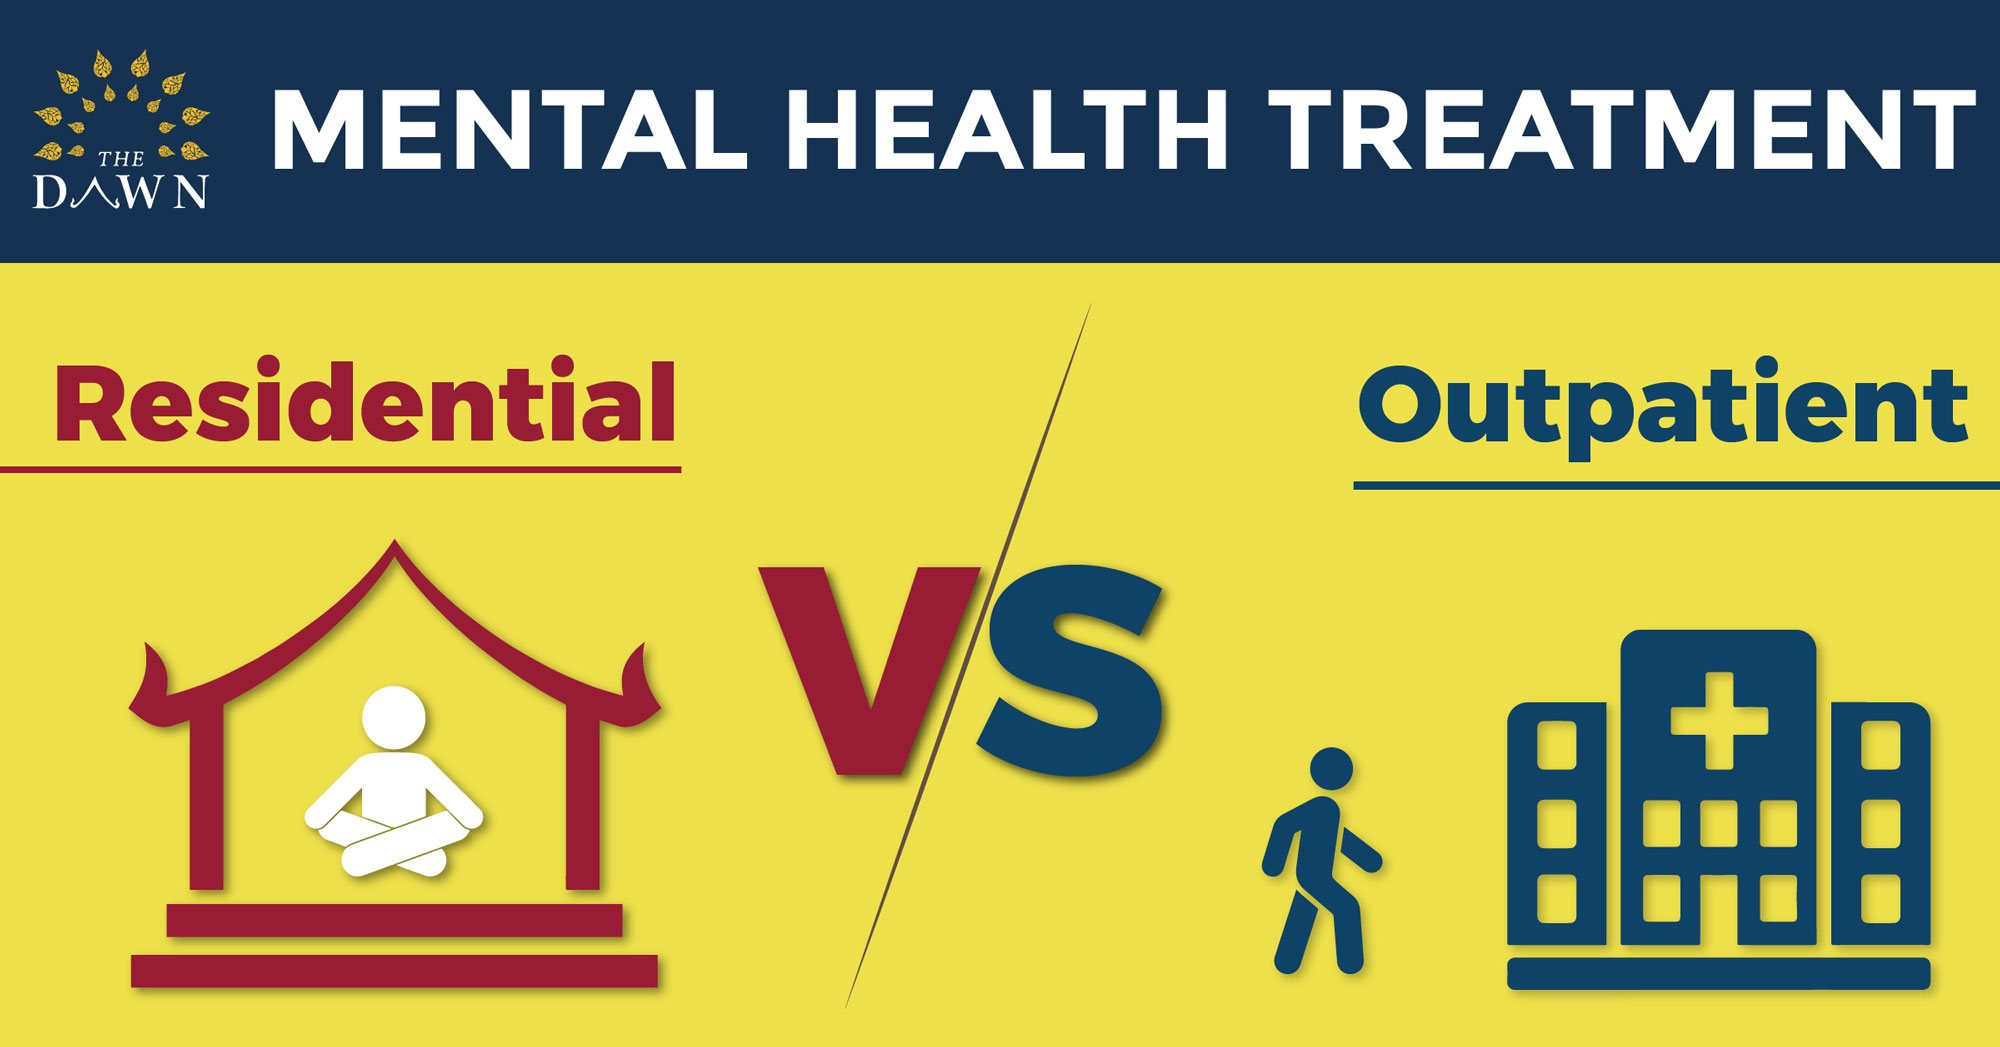 Residential Mental Health Treatment or Outpatient Therapy [Infographic] tmb